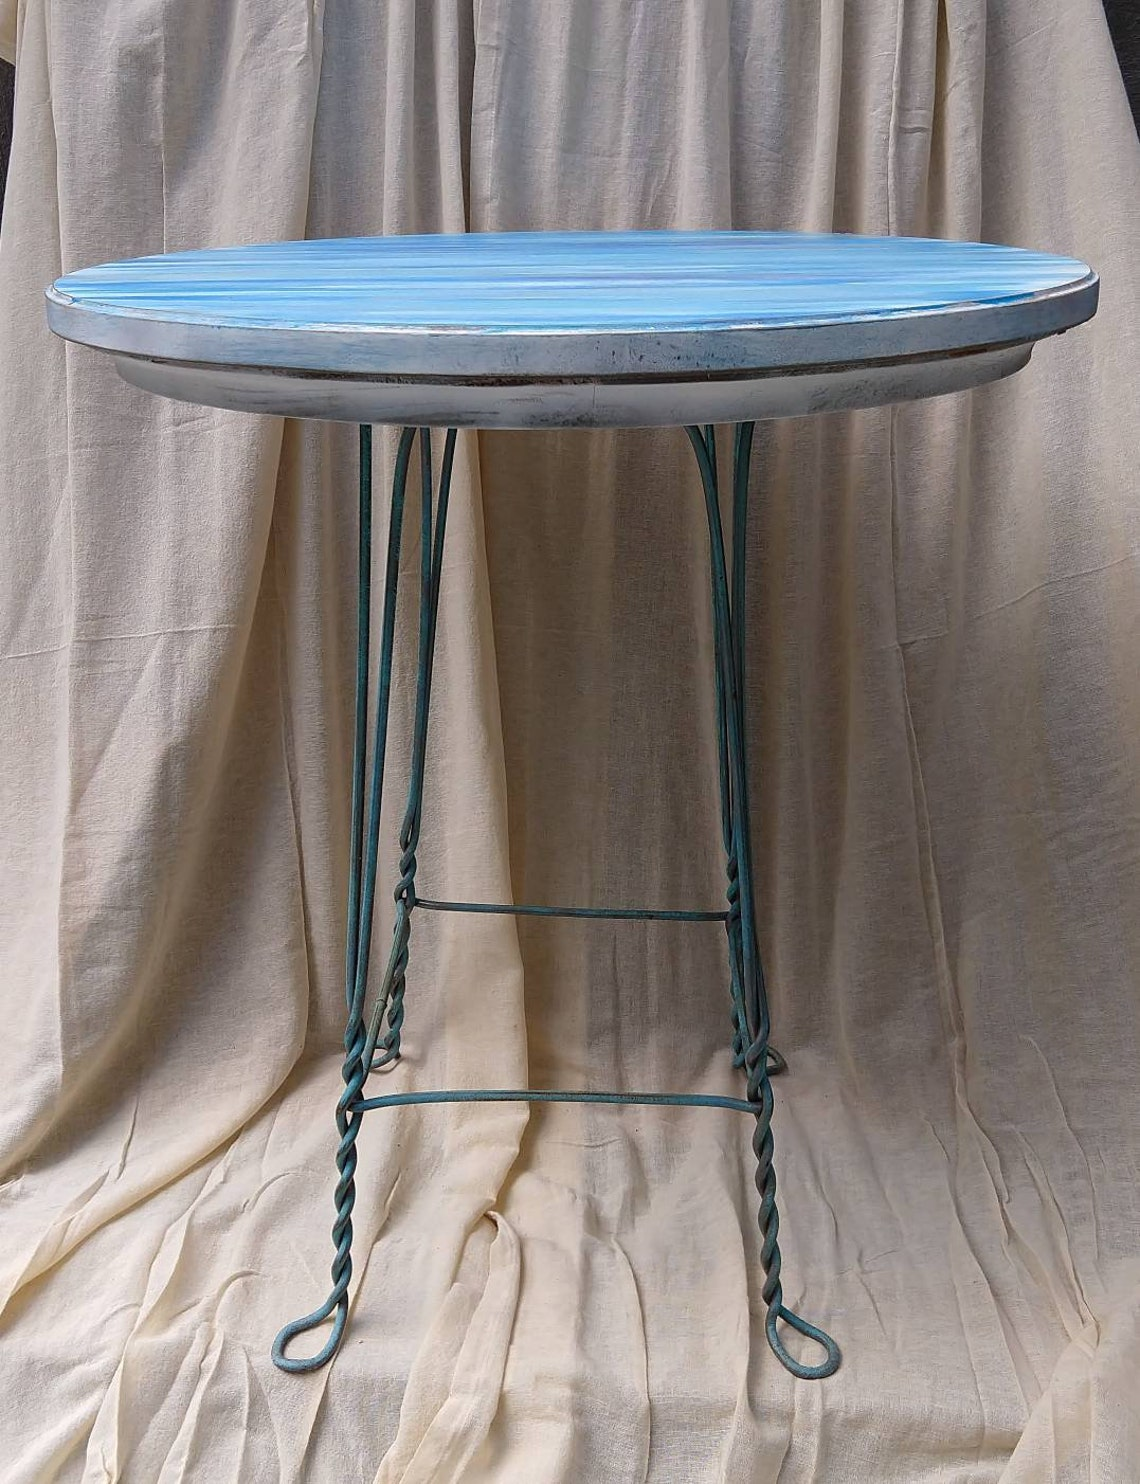 28 in round abstract painted wooden table